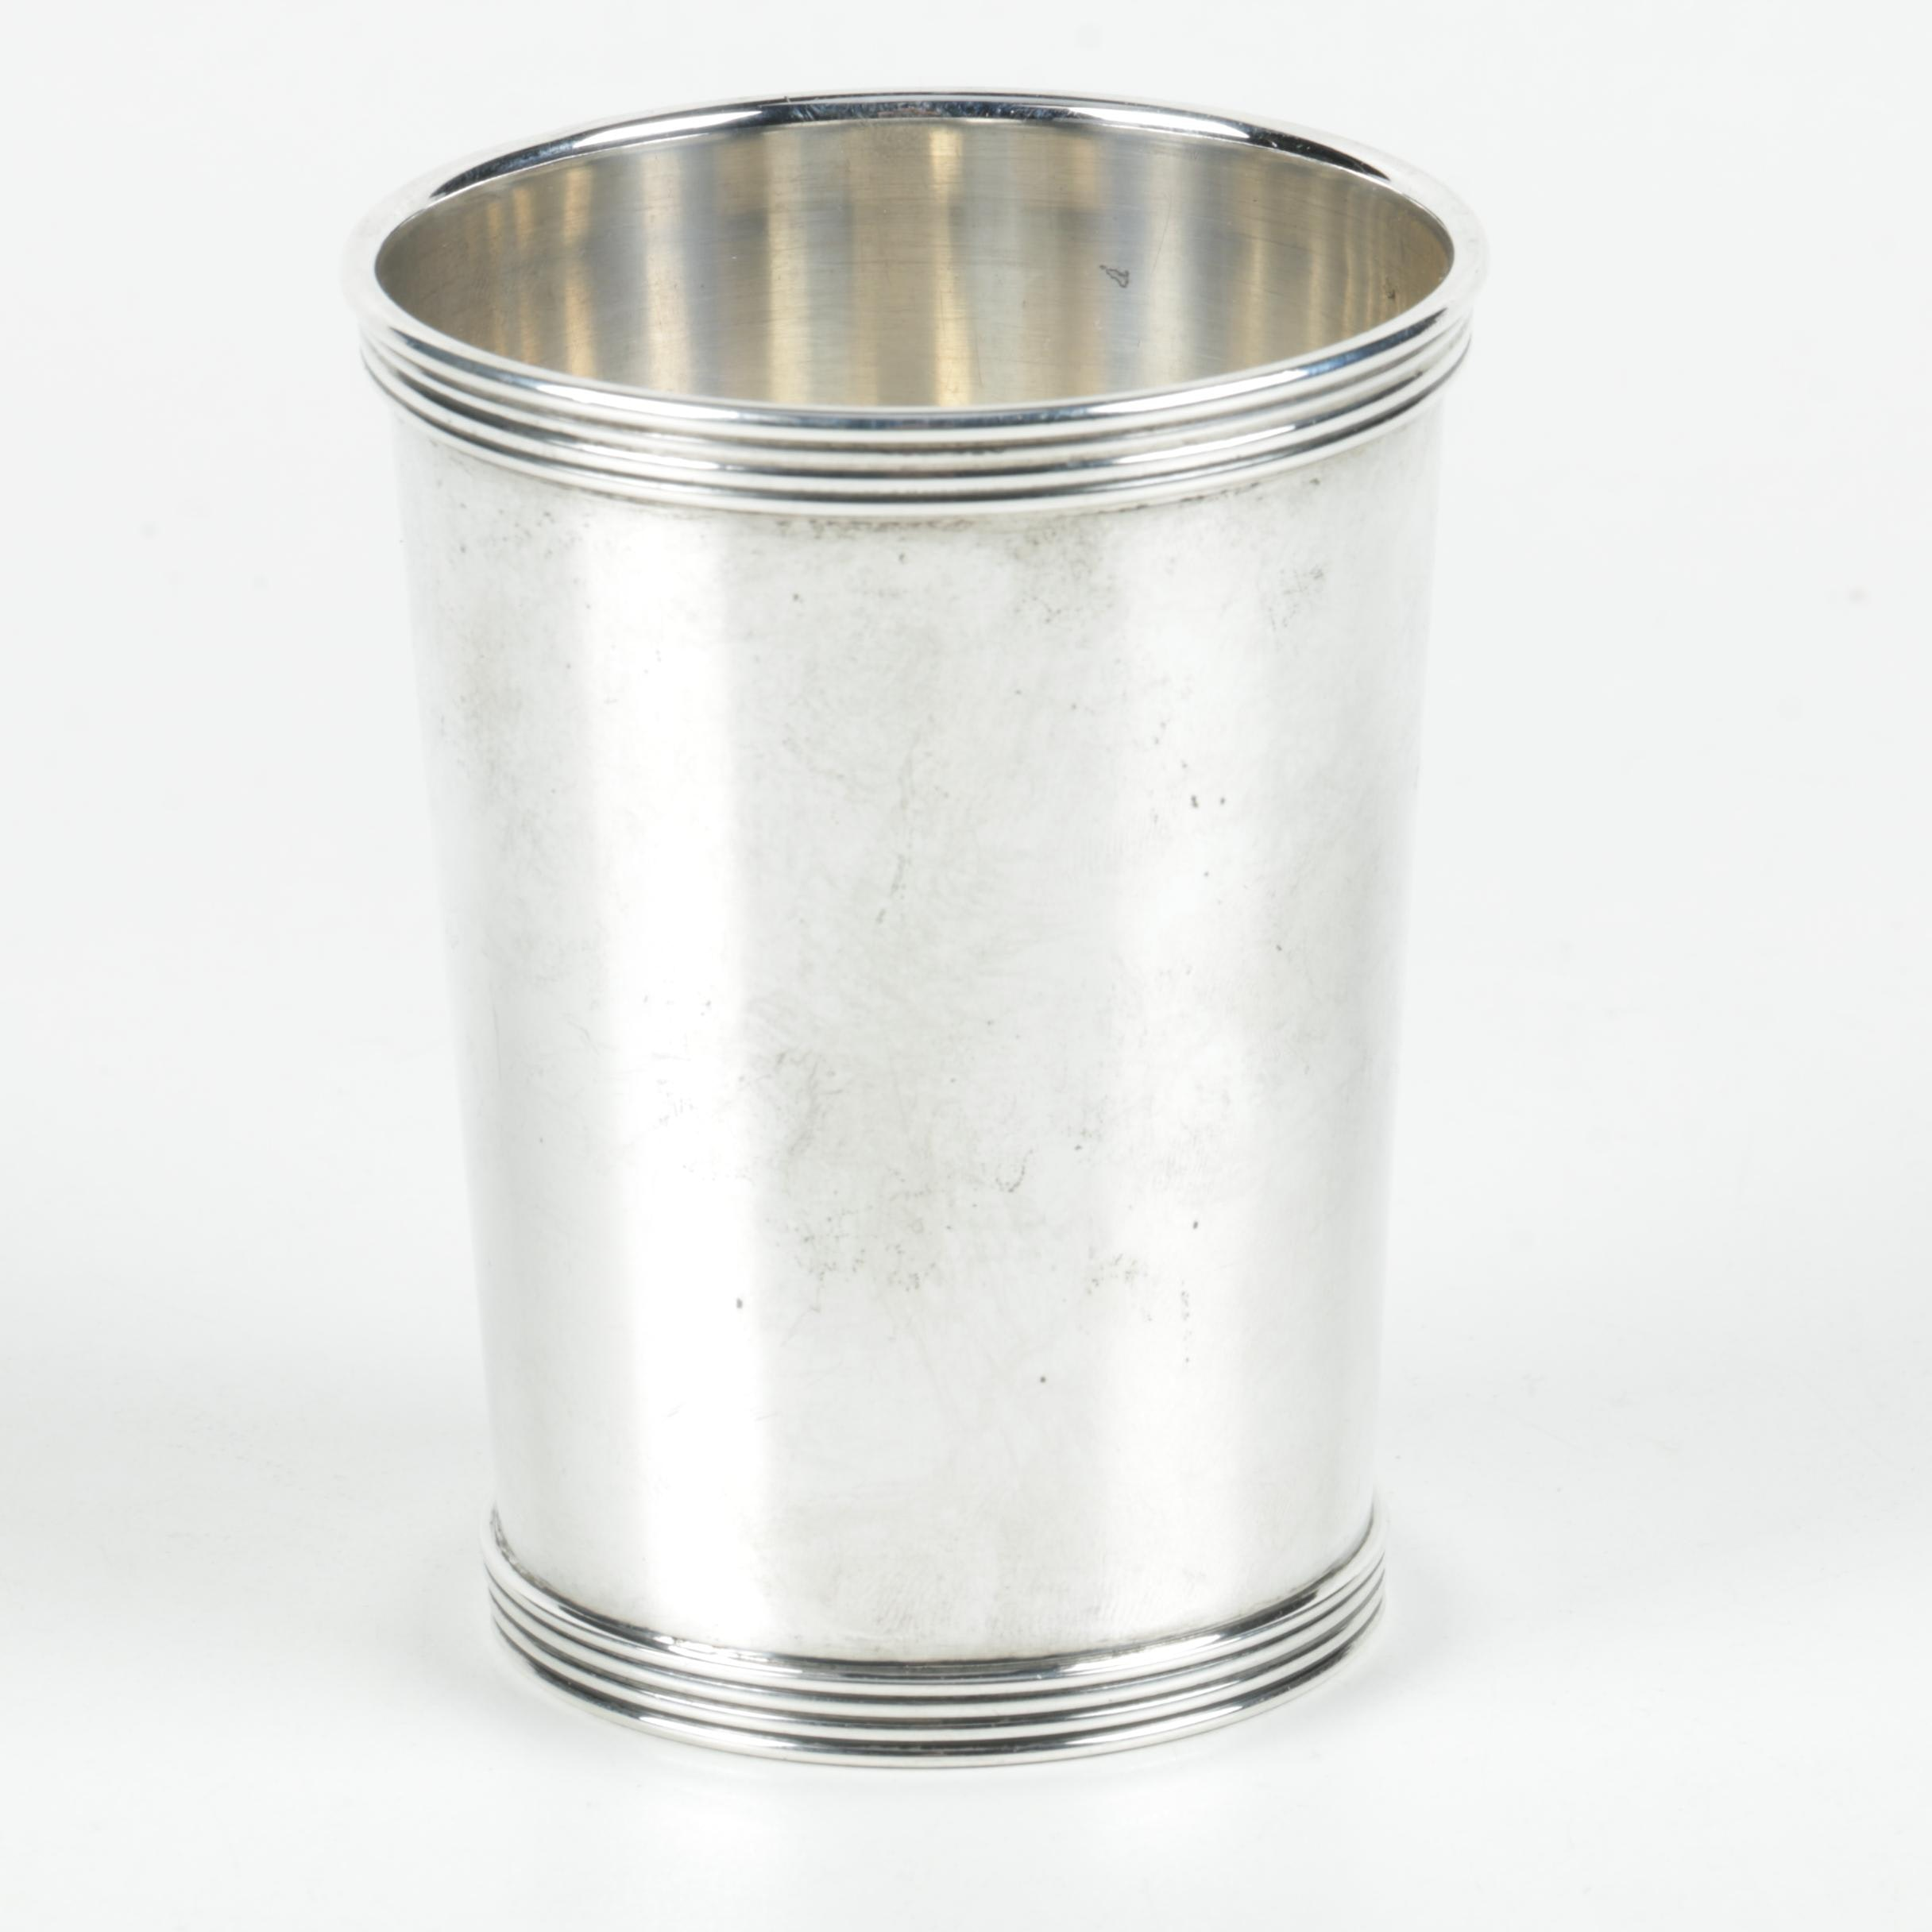 International Silver Co. Sterling Silver Julep Cup